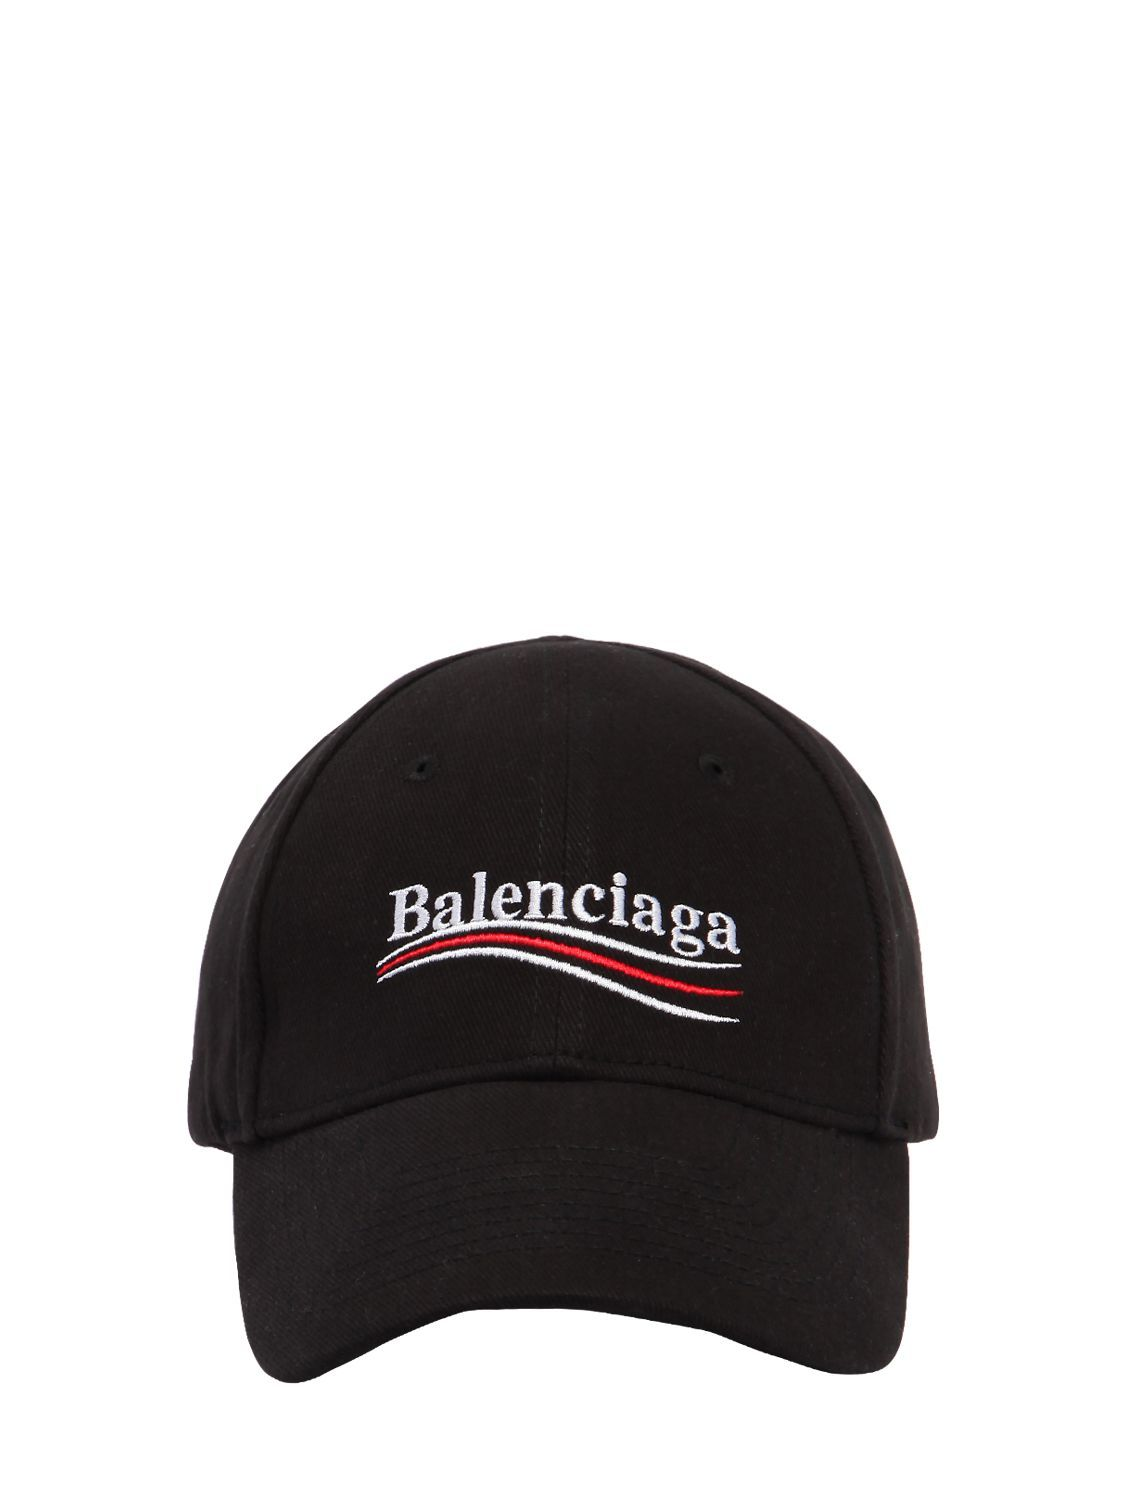 8e5721e6da1 BALENCIAGA NEW POLITICAL LOGO COTTON HAT.  balenciaga